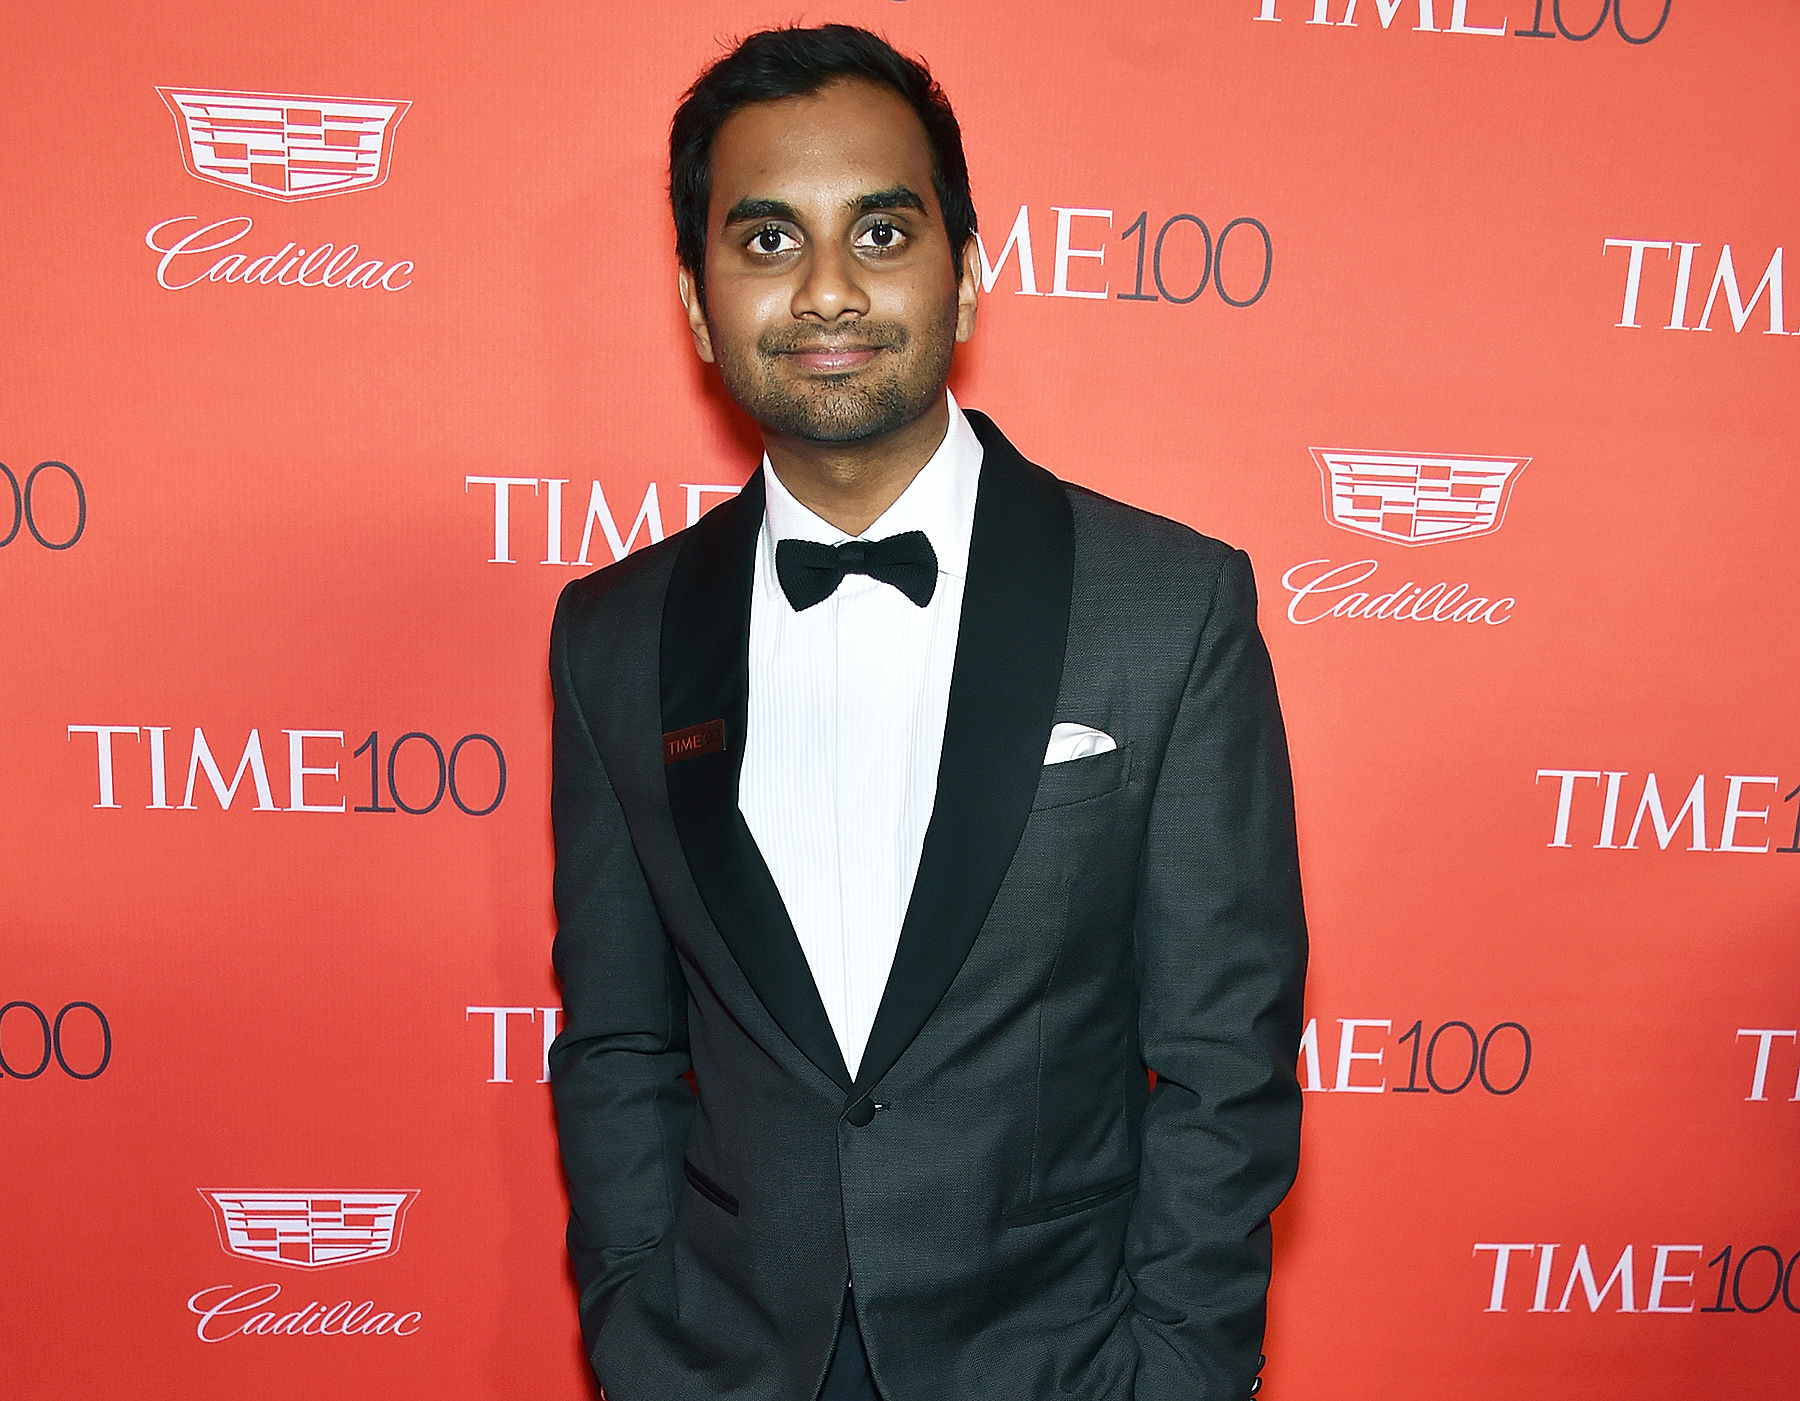 What do the Aziz Ansari allegations mean to you?